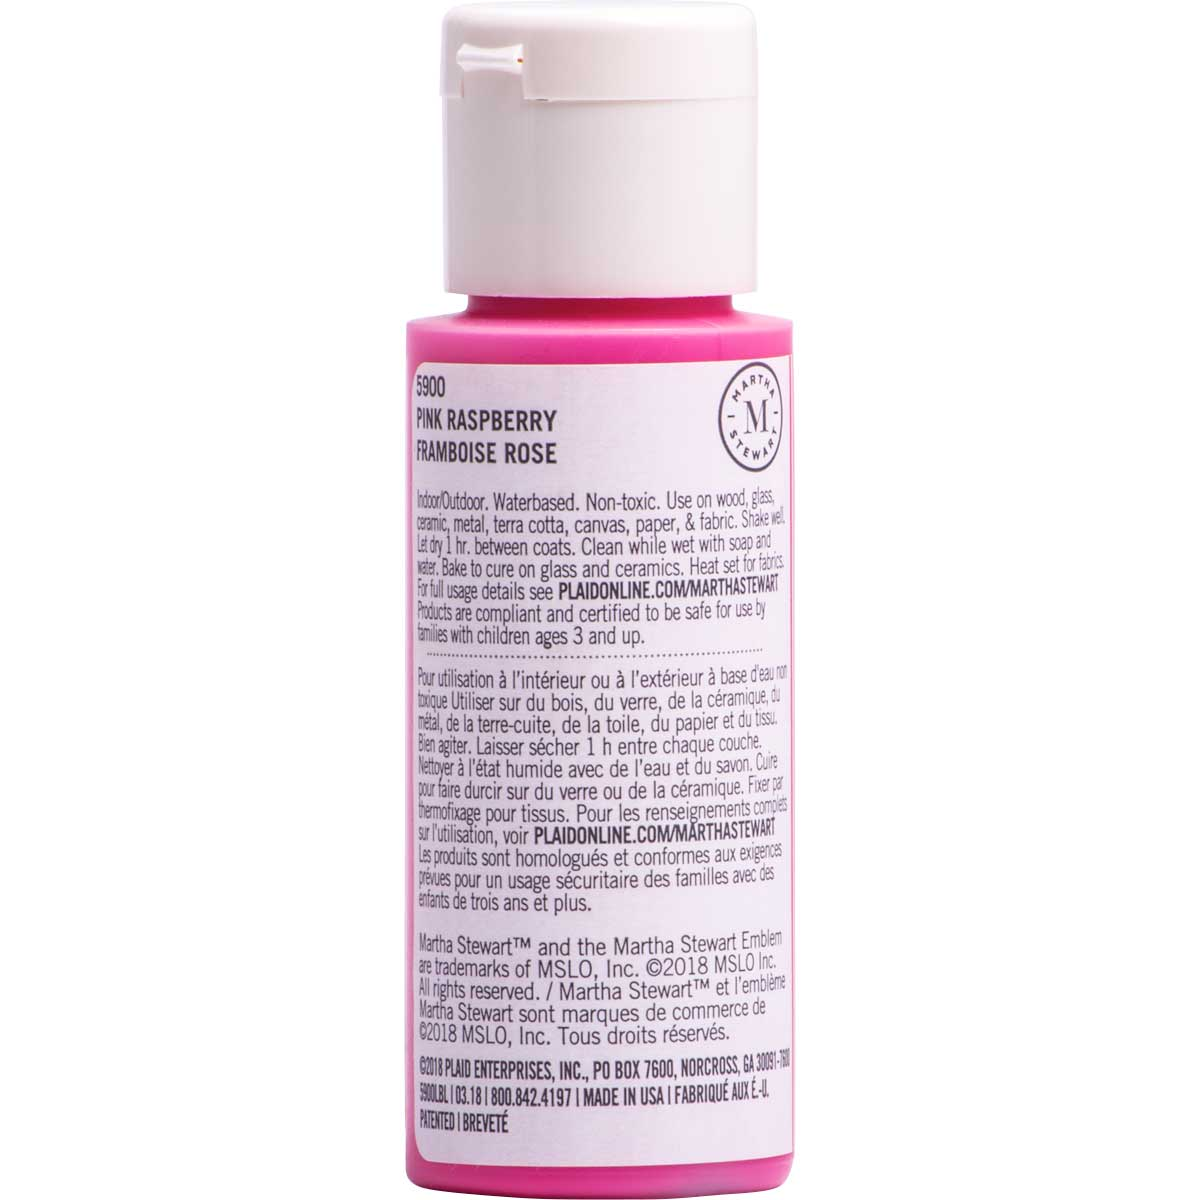 Martha Stewart ® Multi-Surface Satin Acrylic Craft Paint CPSIA - Pink Raspberry, 2 oz. - 5900